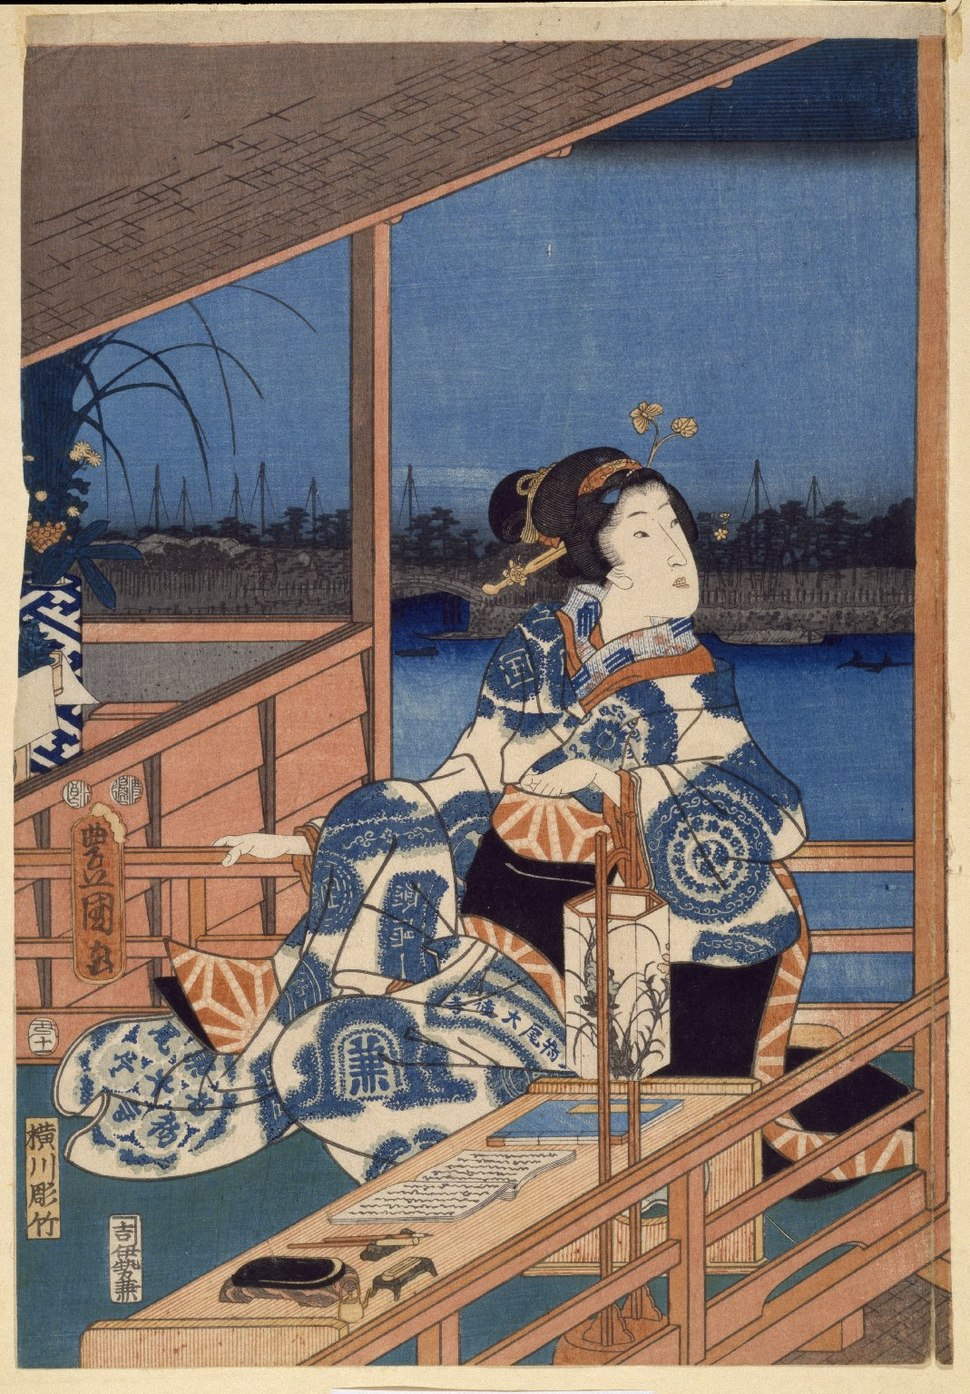 Brooklyn Museum - Moonlight View of Tsukuda with Lady on a Balcony - Utagawa Hiroshige (Ando)